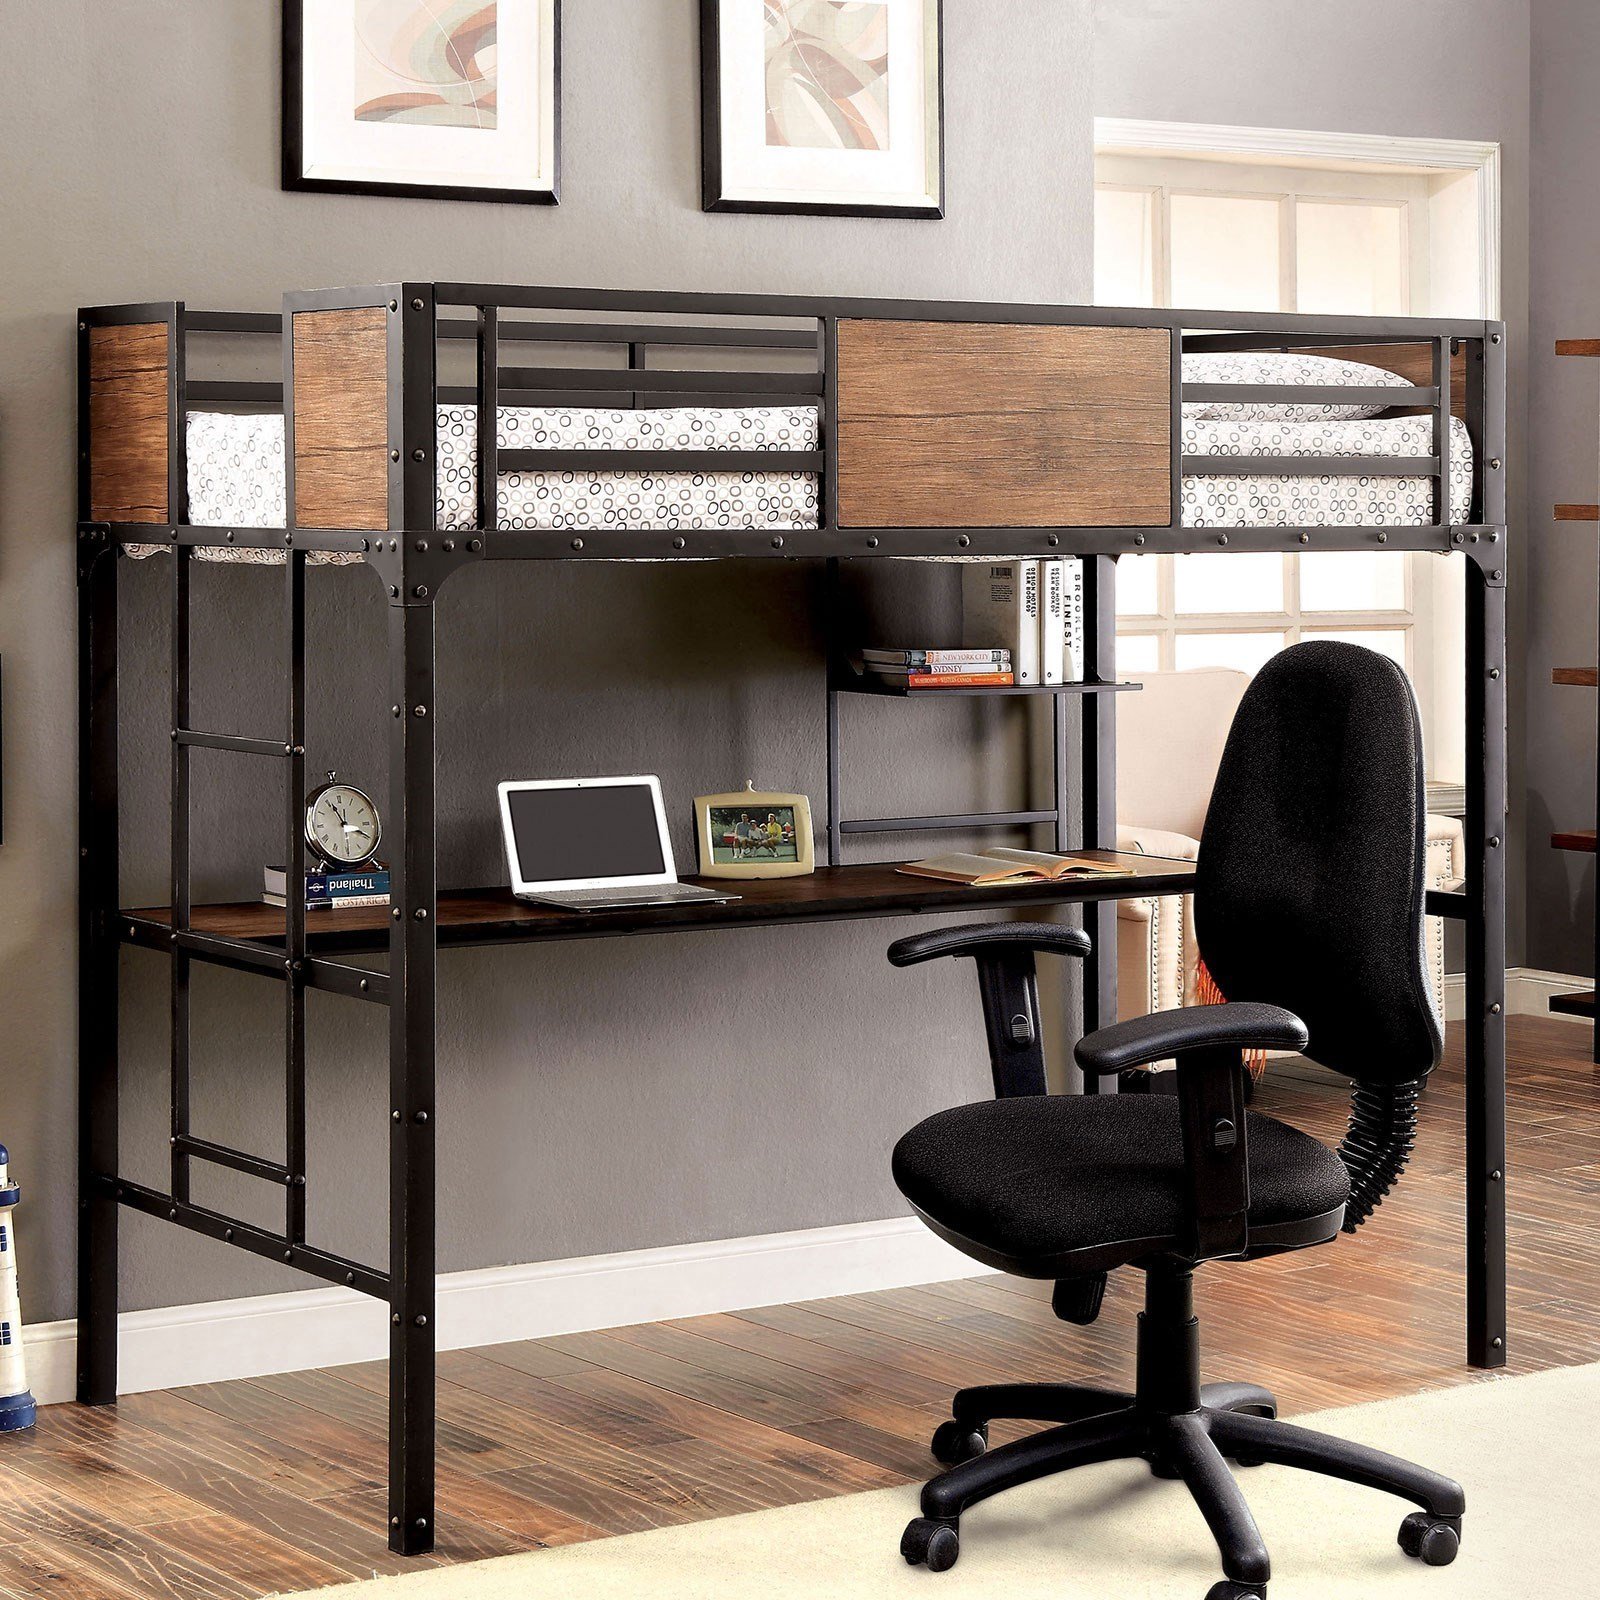 Clapton Twin Bed w/ Workstation at Household Furniture